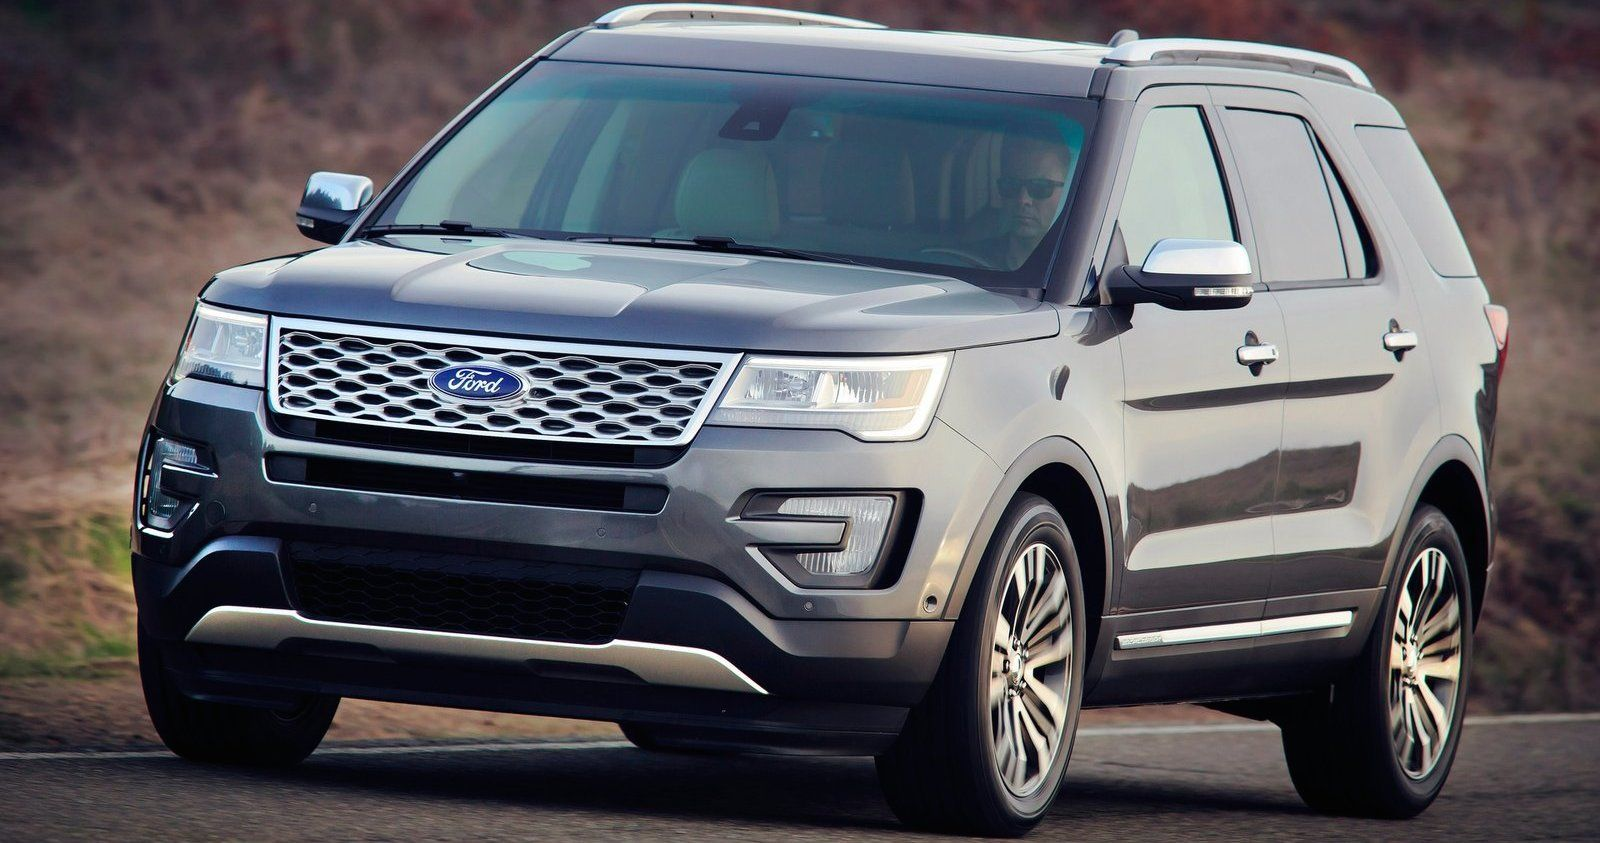 2016 ford explorer new look new technology for updated large suv http